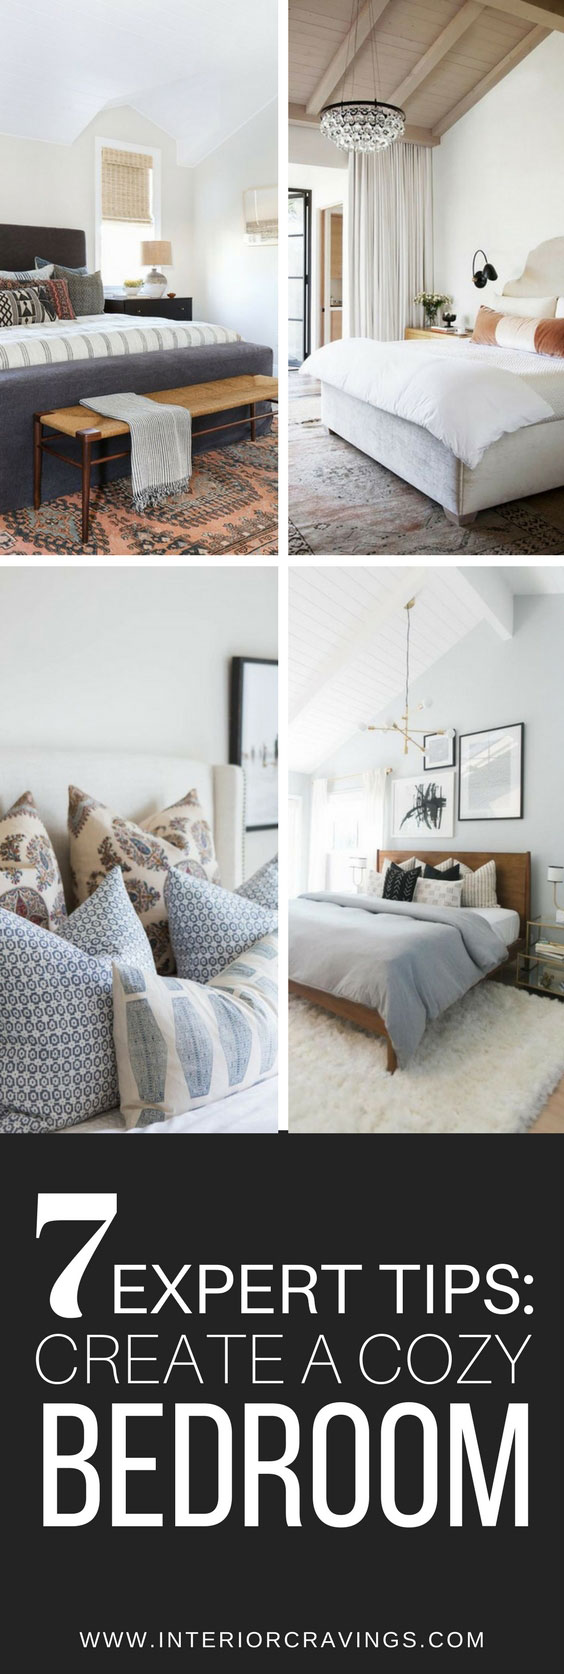 7 expert tips to create a cozy bedroom